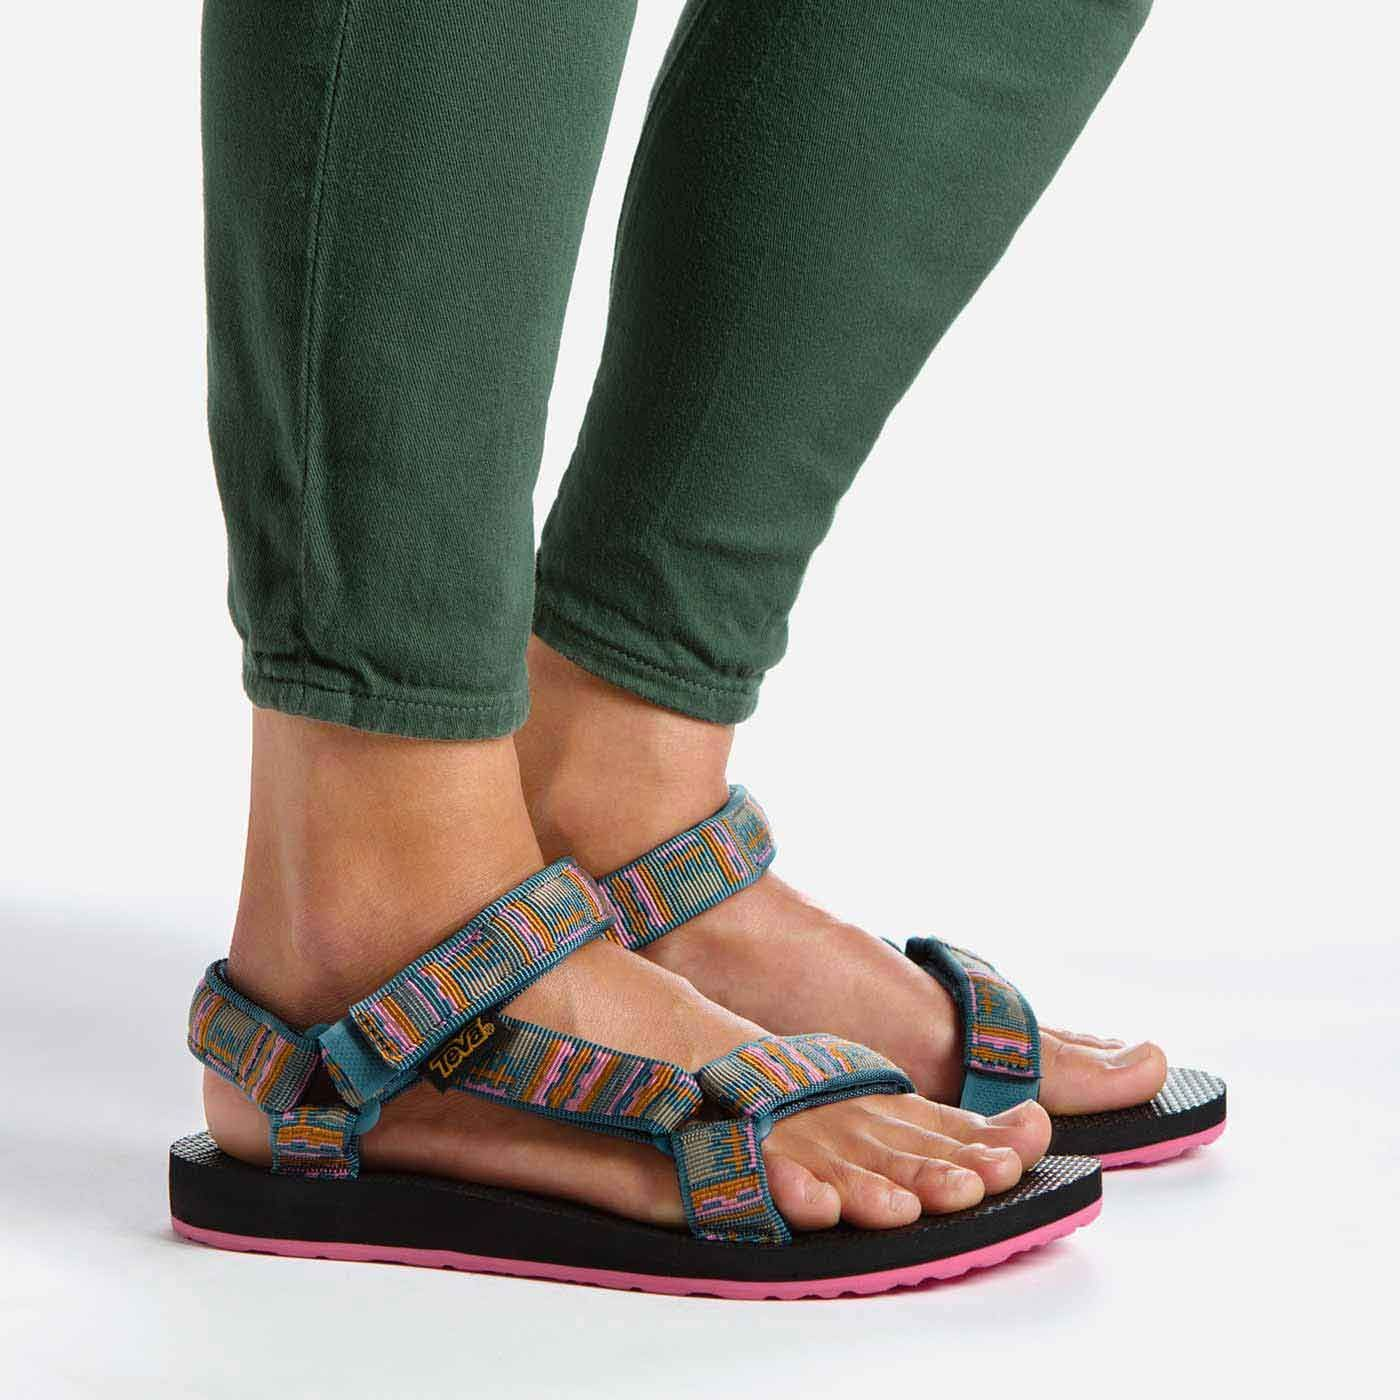 Womens sandals teva